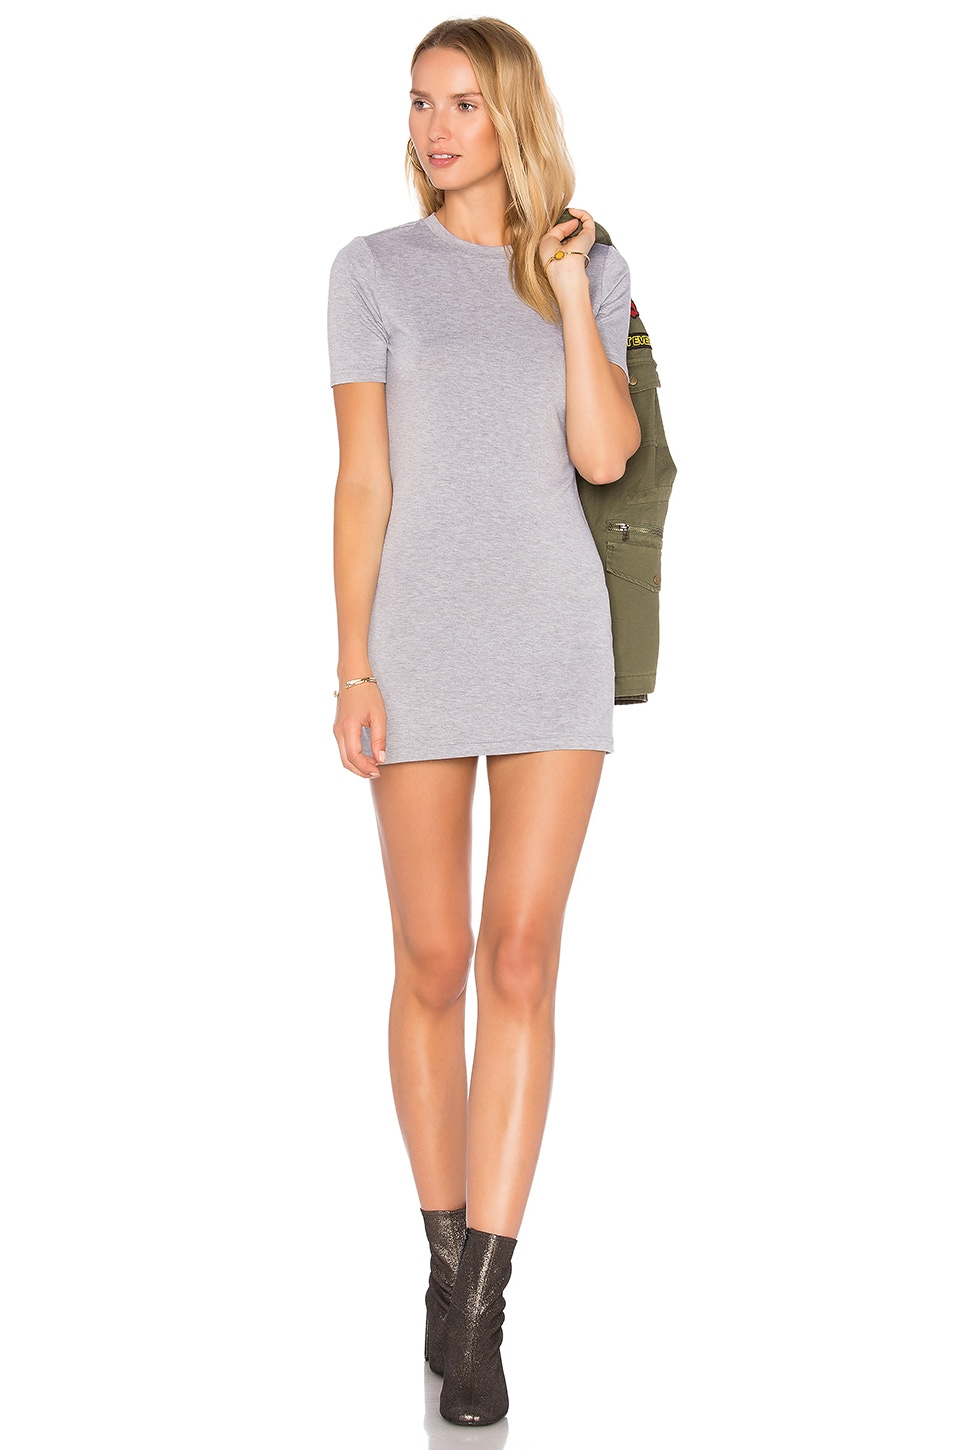 BLQ BASIQ Tee Dress in Heather Gray